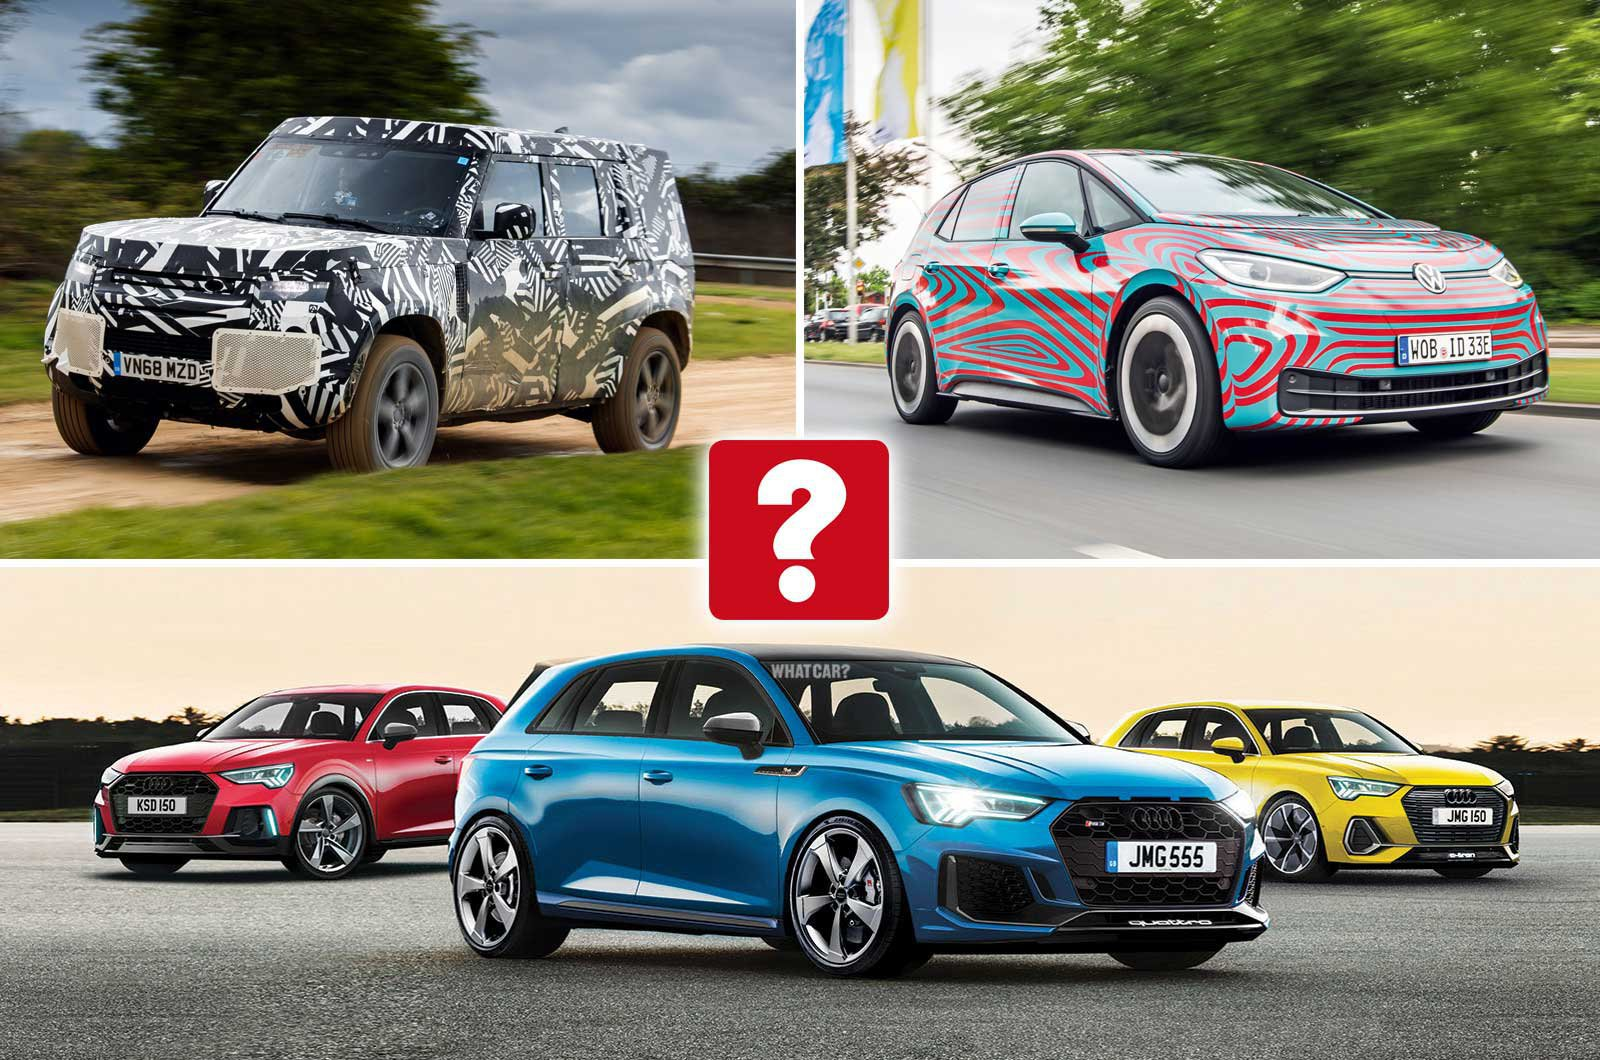 New VW ID 3, Audi A3 and Land Rover Defender